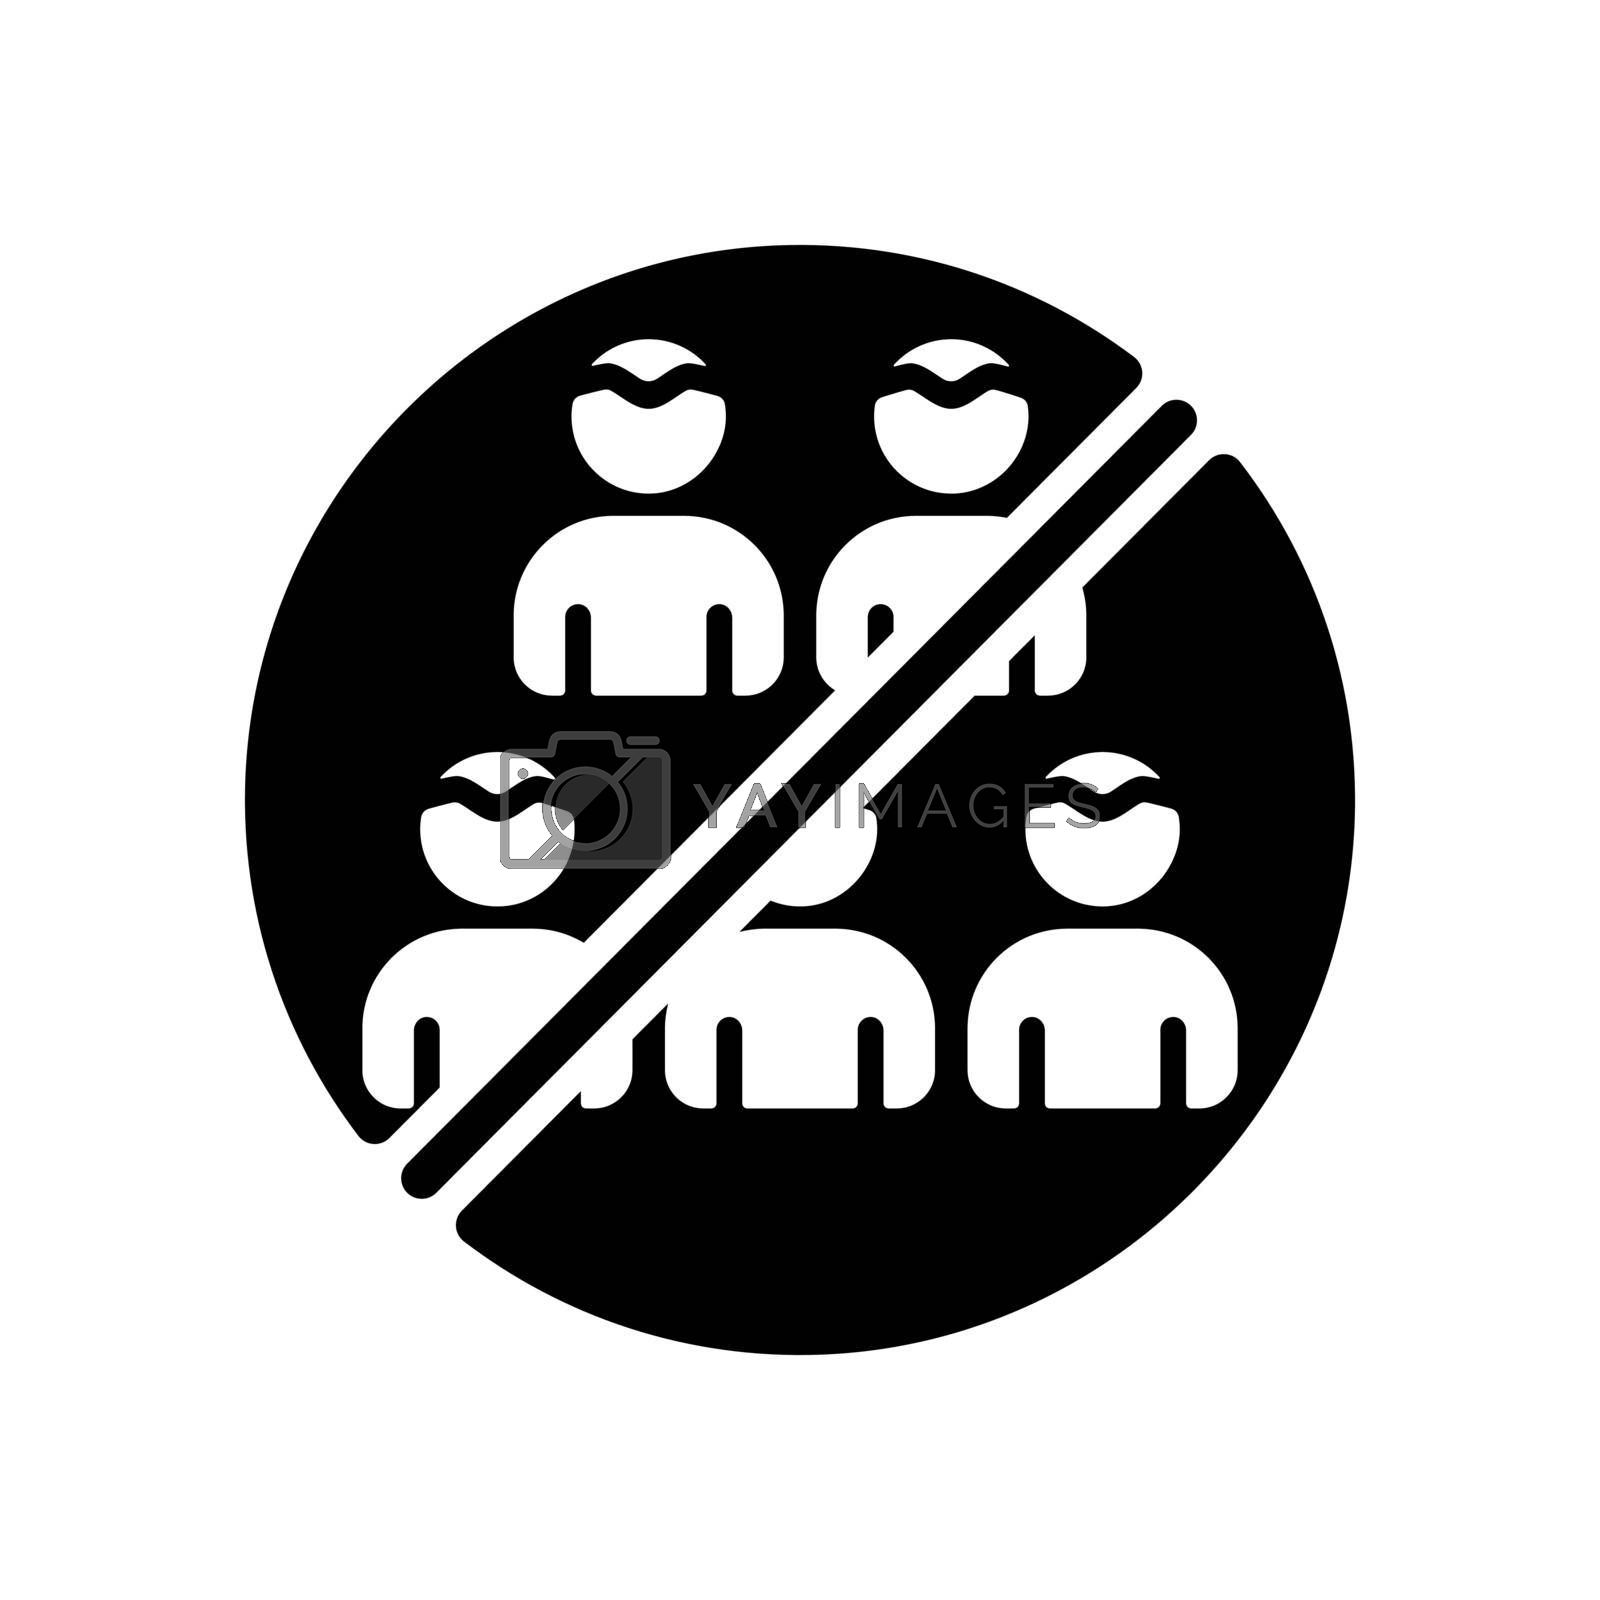 Social distancing prevention virus vector glyph icon. No gathering. Keep your distance. Avoid crowds. Coronavirus